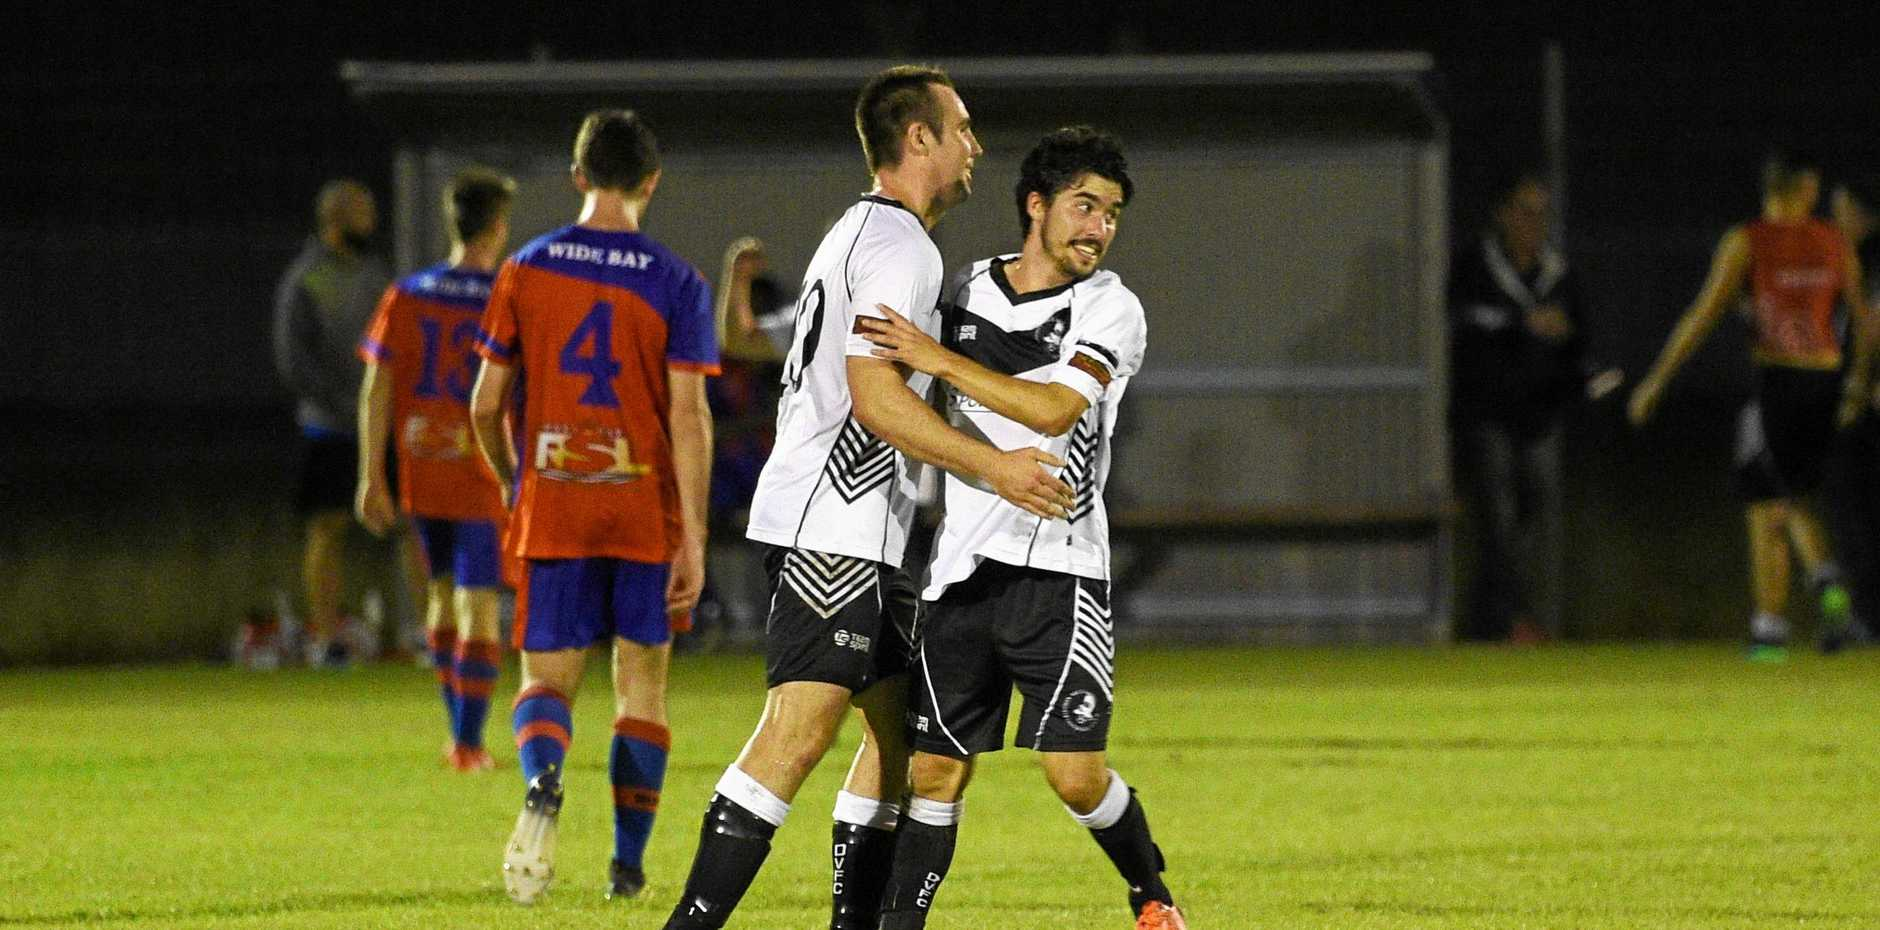 Doon Villa players celebrate after their 2-1 FFA Cup win against Wide Bay Buccaneers at Villa Park, Maryborough.